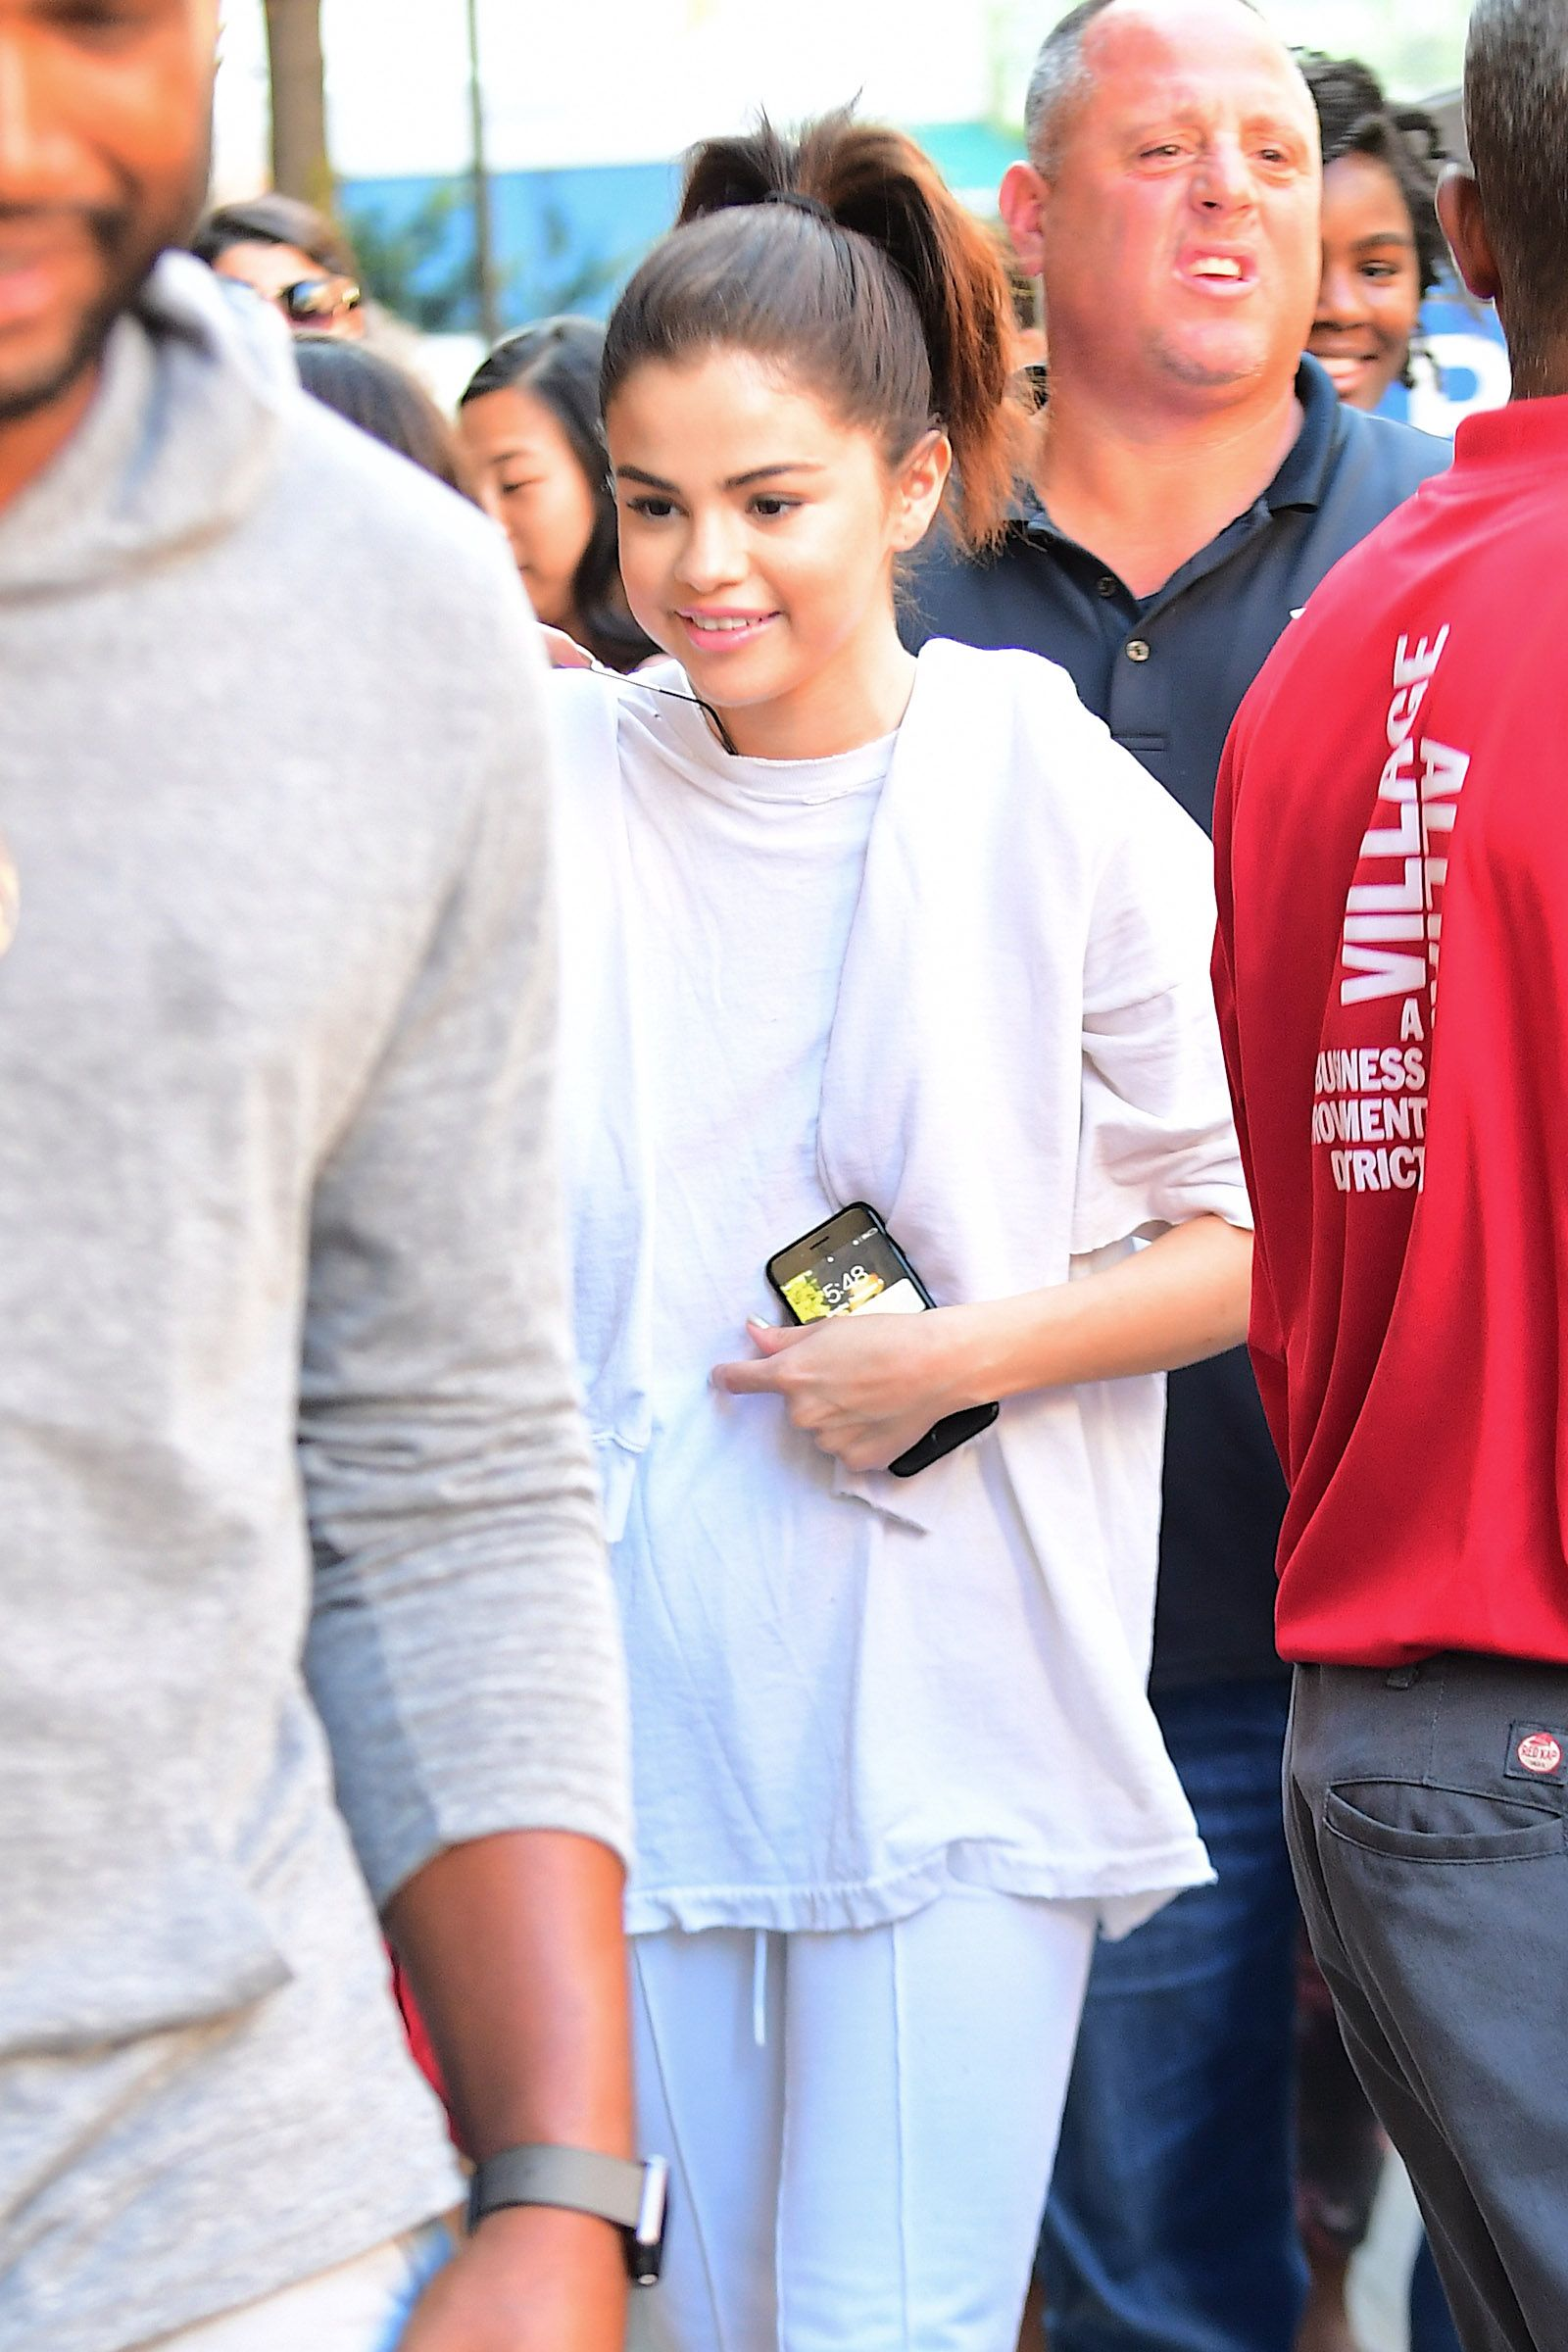 Selena Gomez out with The Weeknd on her phone background.